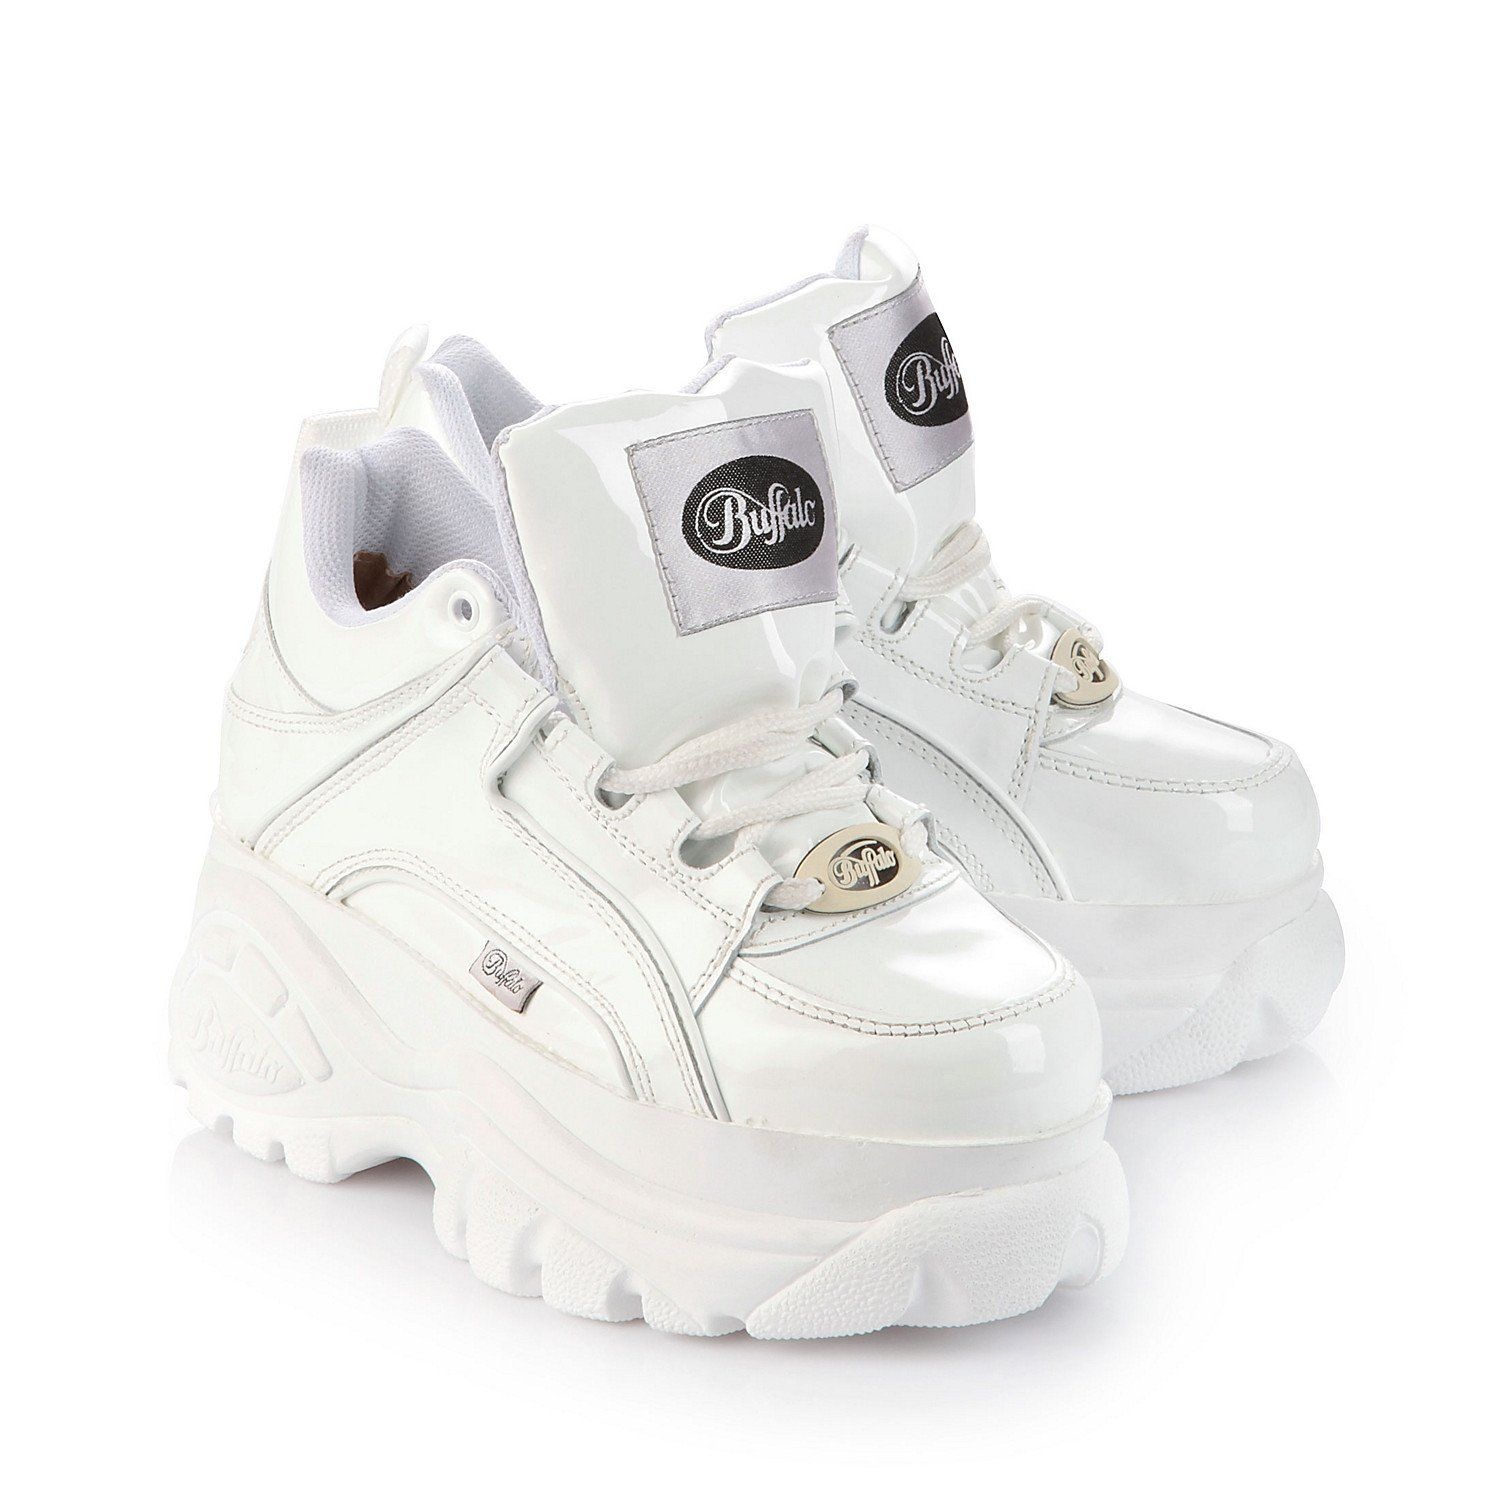 1bf412297e New Buffalo Classic Boots 1339-14 WHITE Platform Shoes Trainers Sizes UK  3-8: Amazon.co.uk: Shoes & Bags